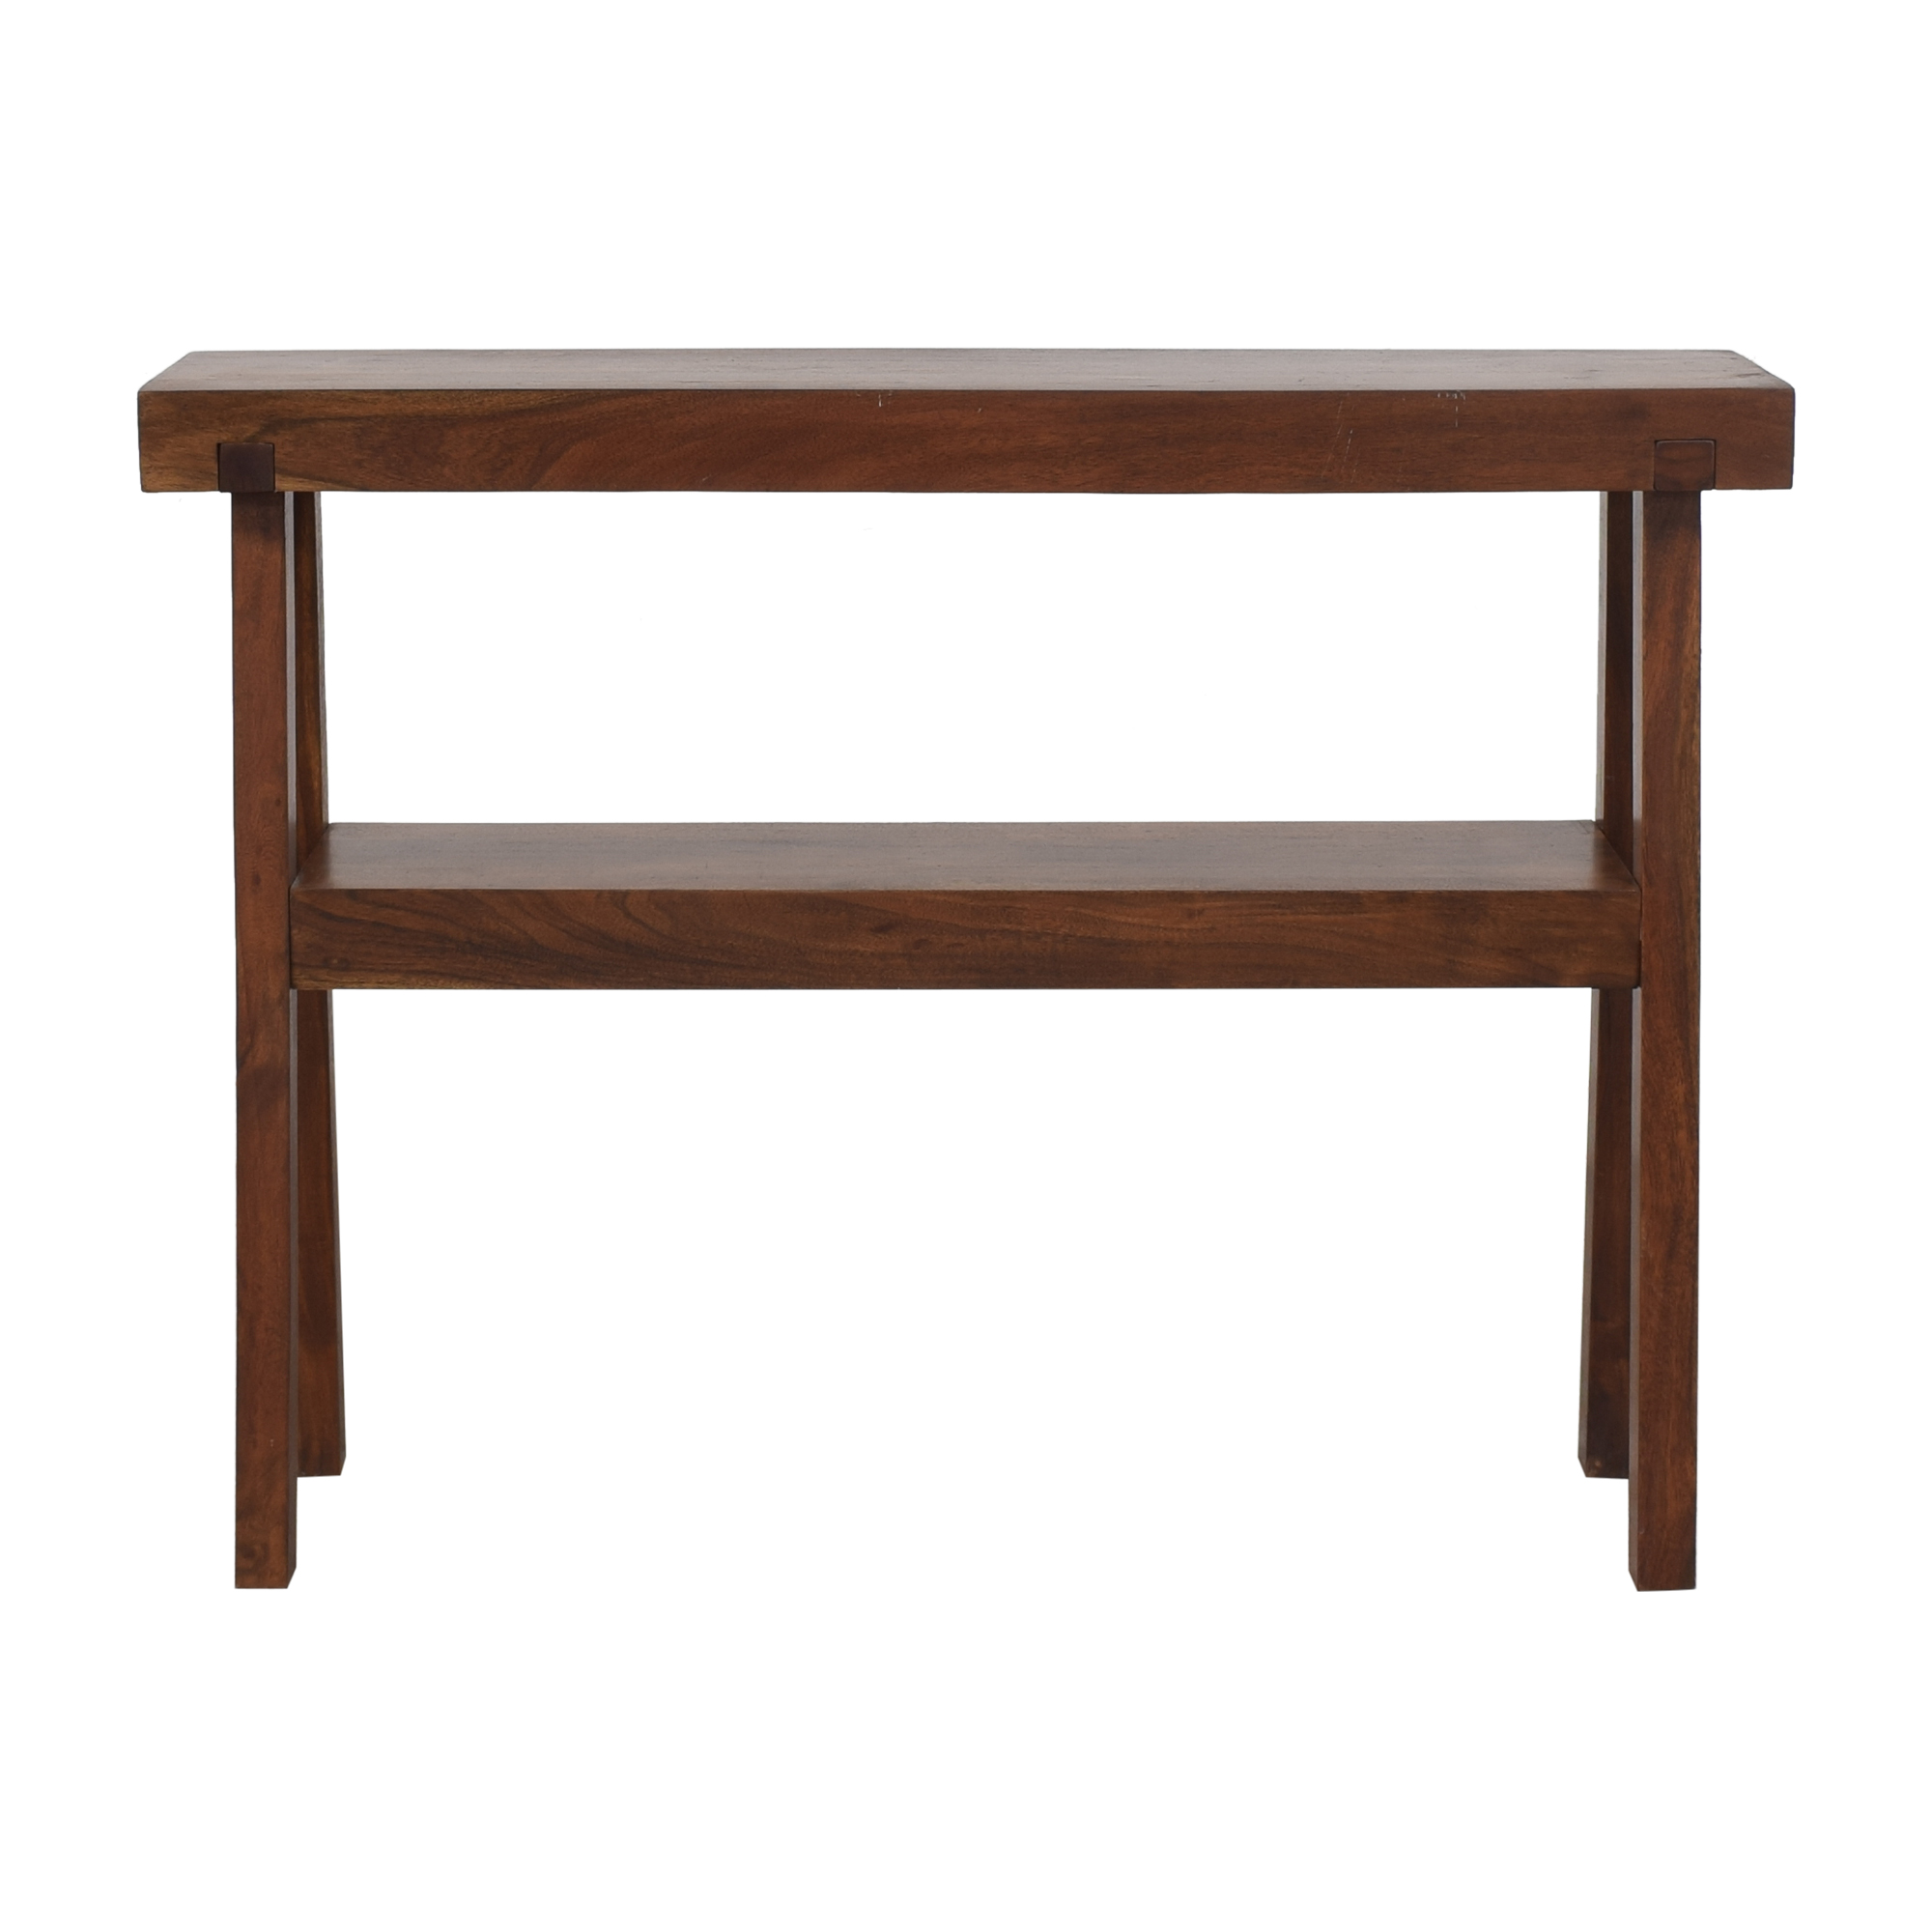 West Elm West Elm Rustic Console Table discount